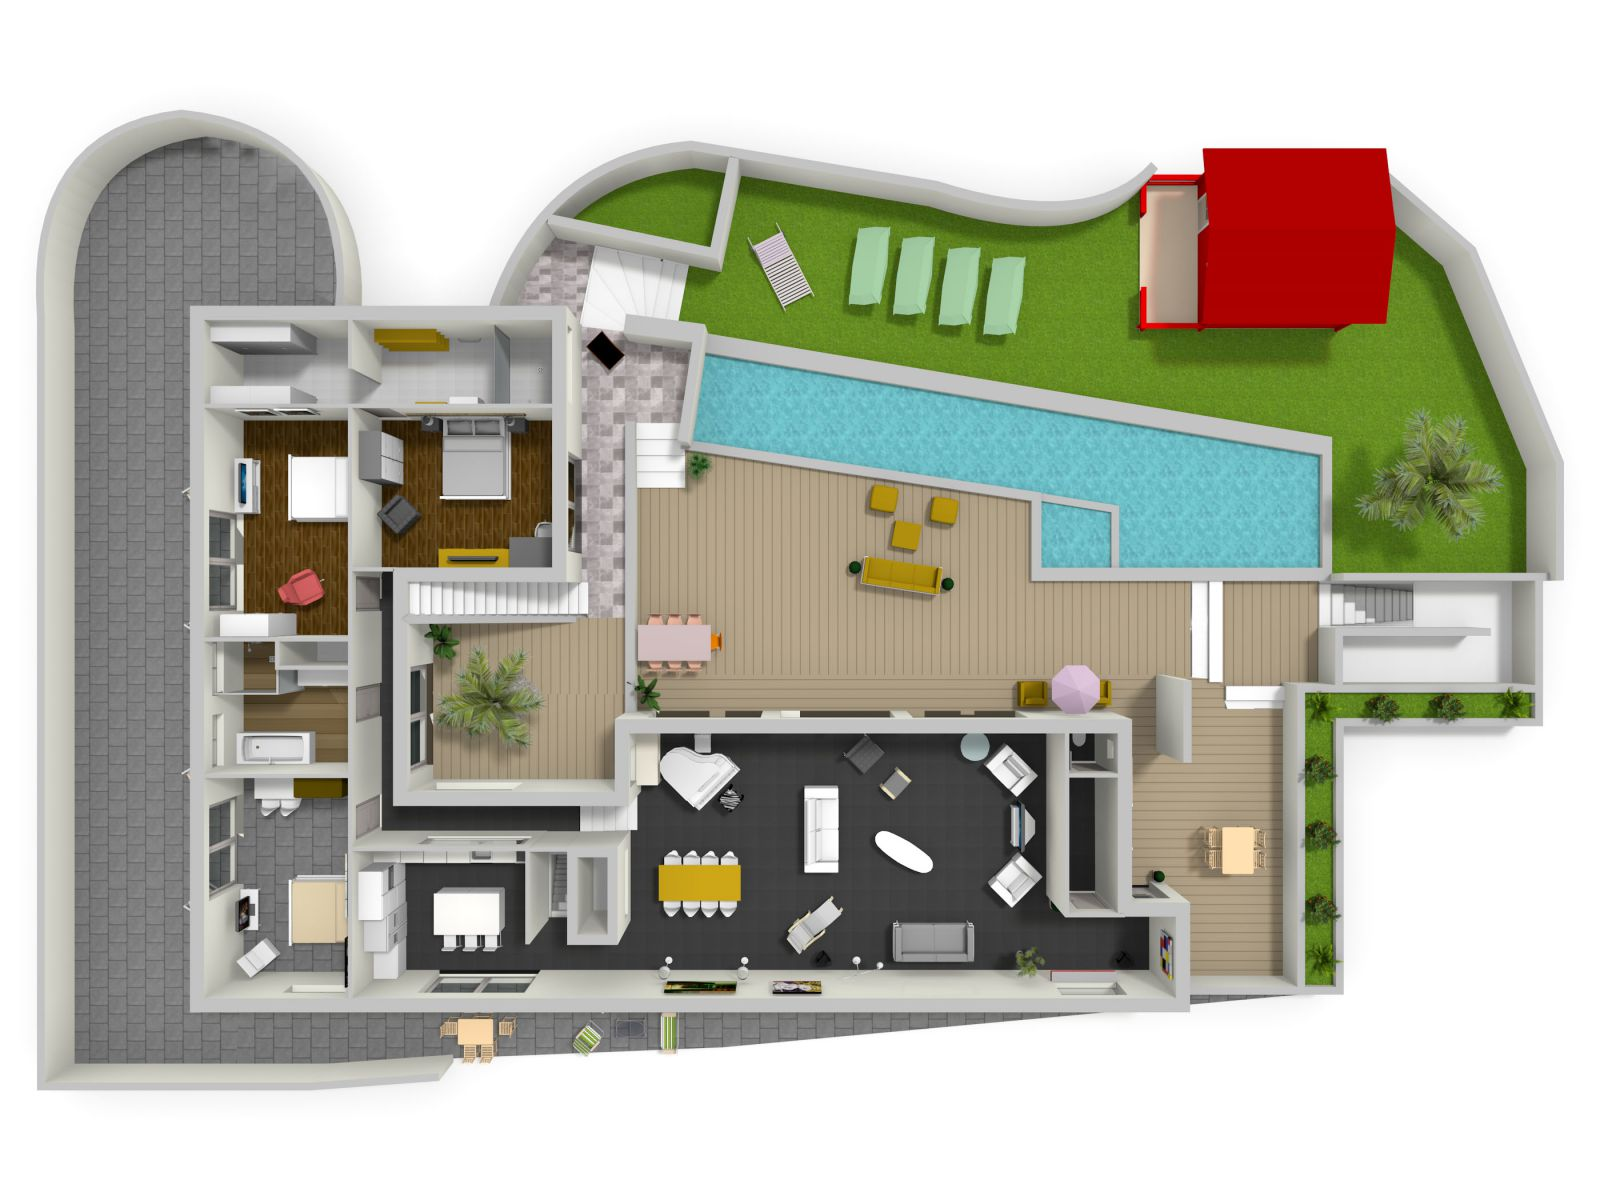 Les plans 3d de la maison des secrets for Plans en 3d